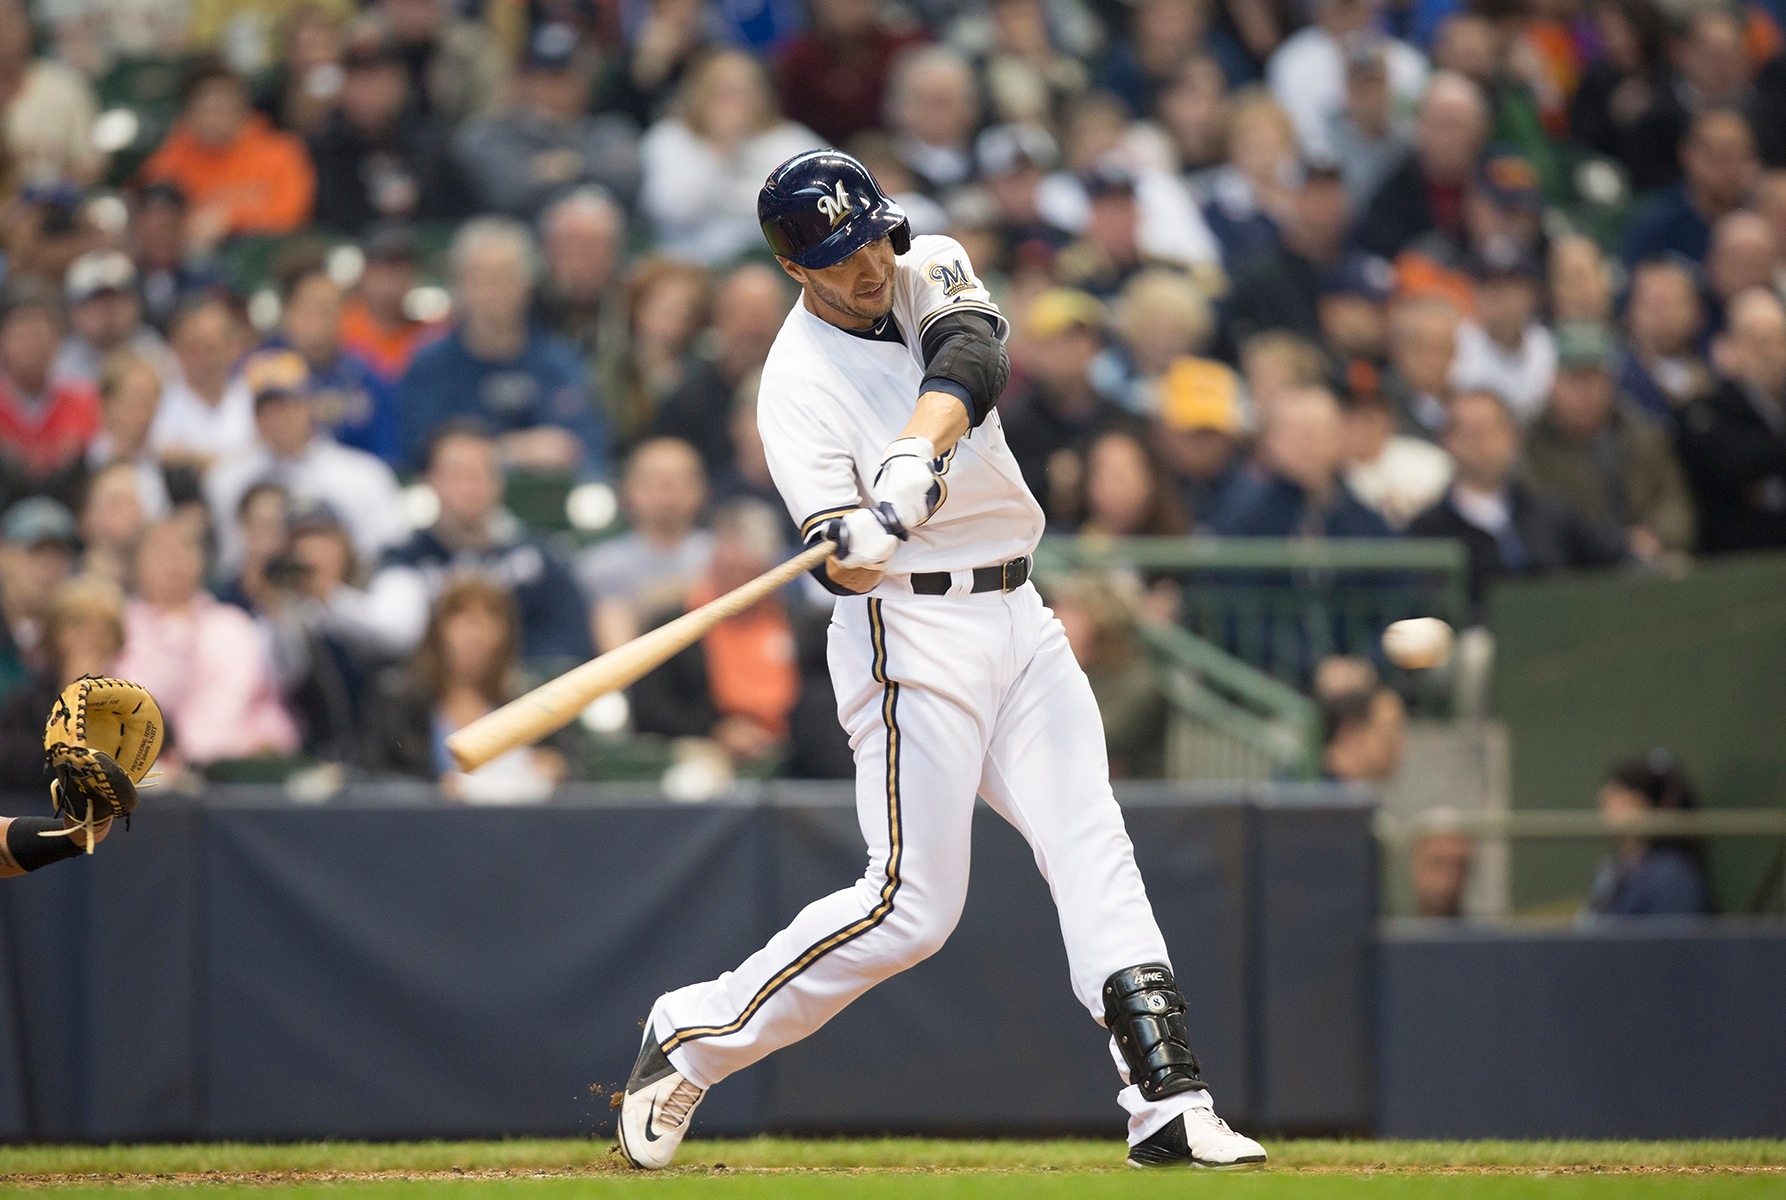 All-Star Ryan Braun of the Milwaukee Brewers is coming back from postseason lower-back surgery that affected him even through spring training. (Scott Paulus/Milwaukee Brewers)